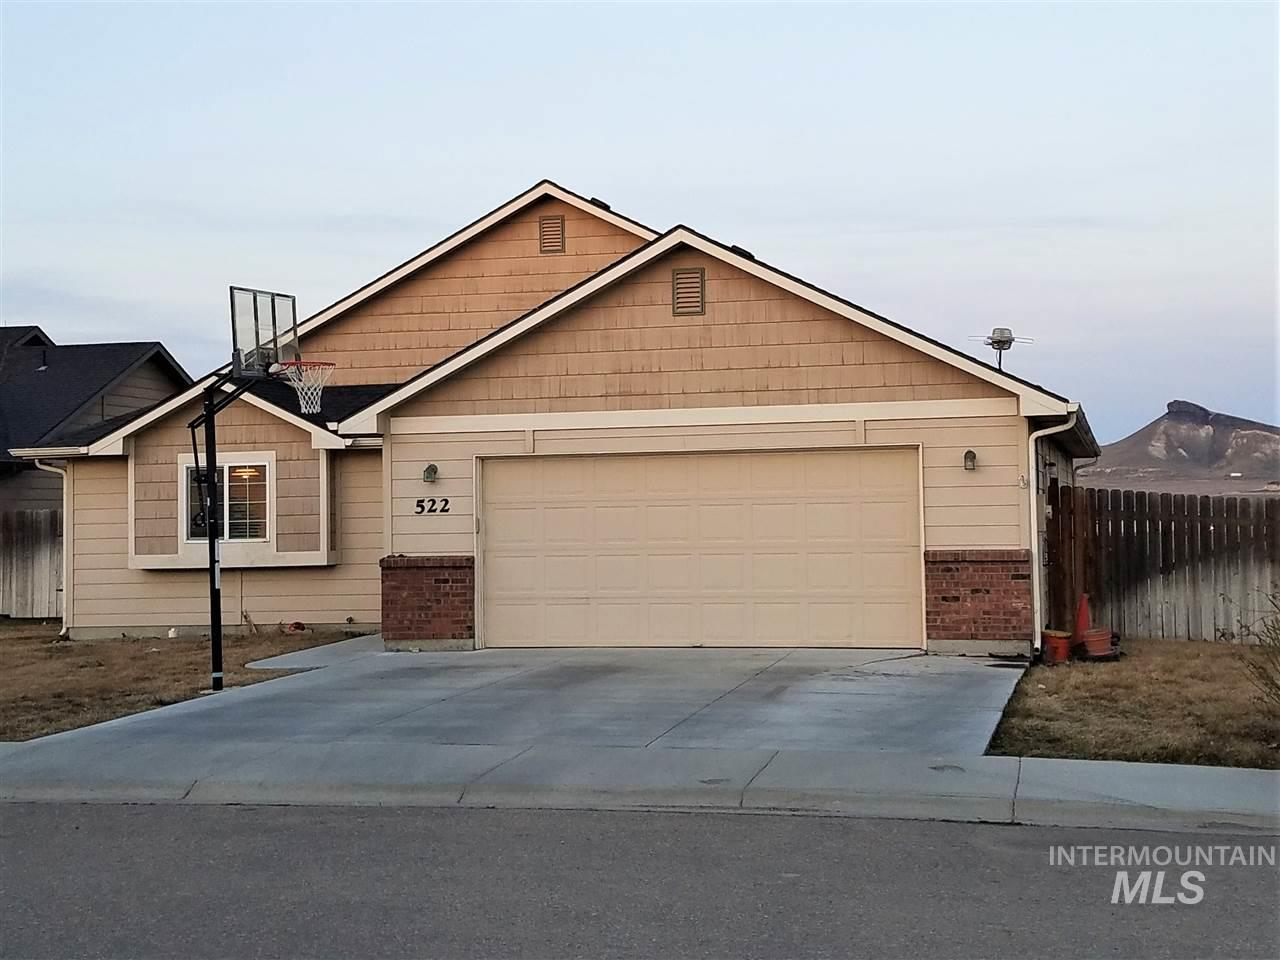 522 Morning Dove Way, Marsing, Idaho 83639, 3 Bedrooms, 2 Bathrooms, Residential For Sale, Price $245,900, 98722158